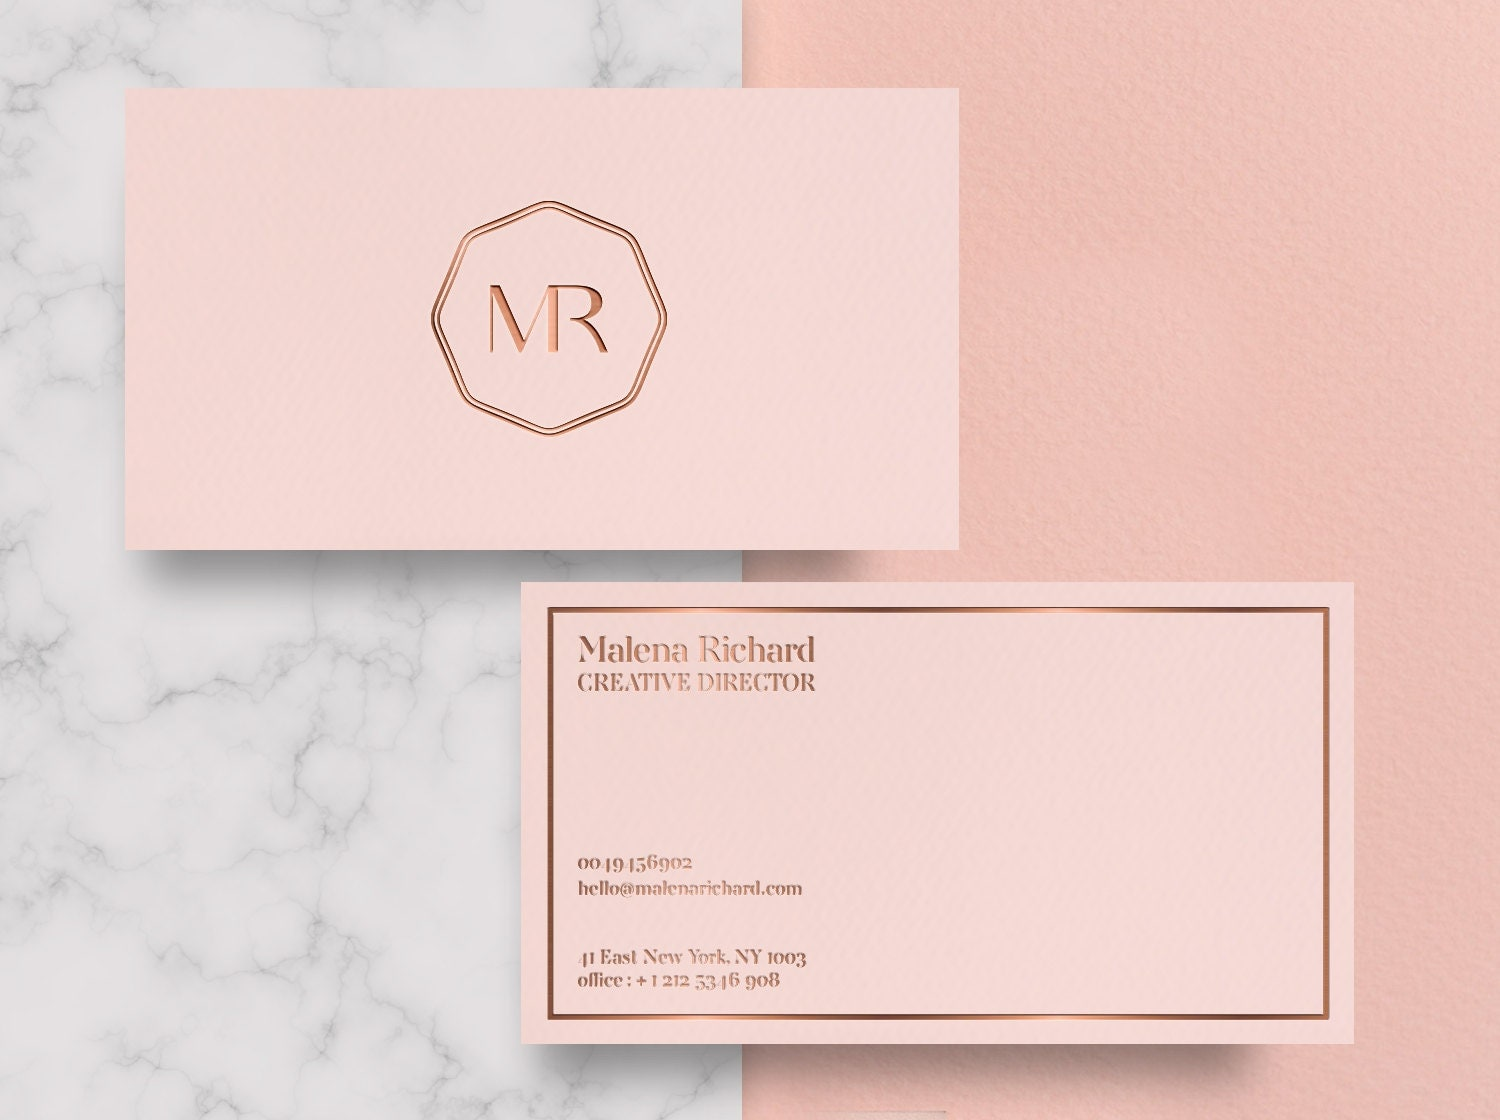 Rose gold business cards unlimitedgamers business card design premade business card template colourmoves